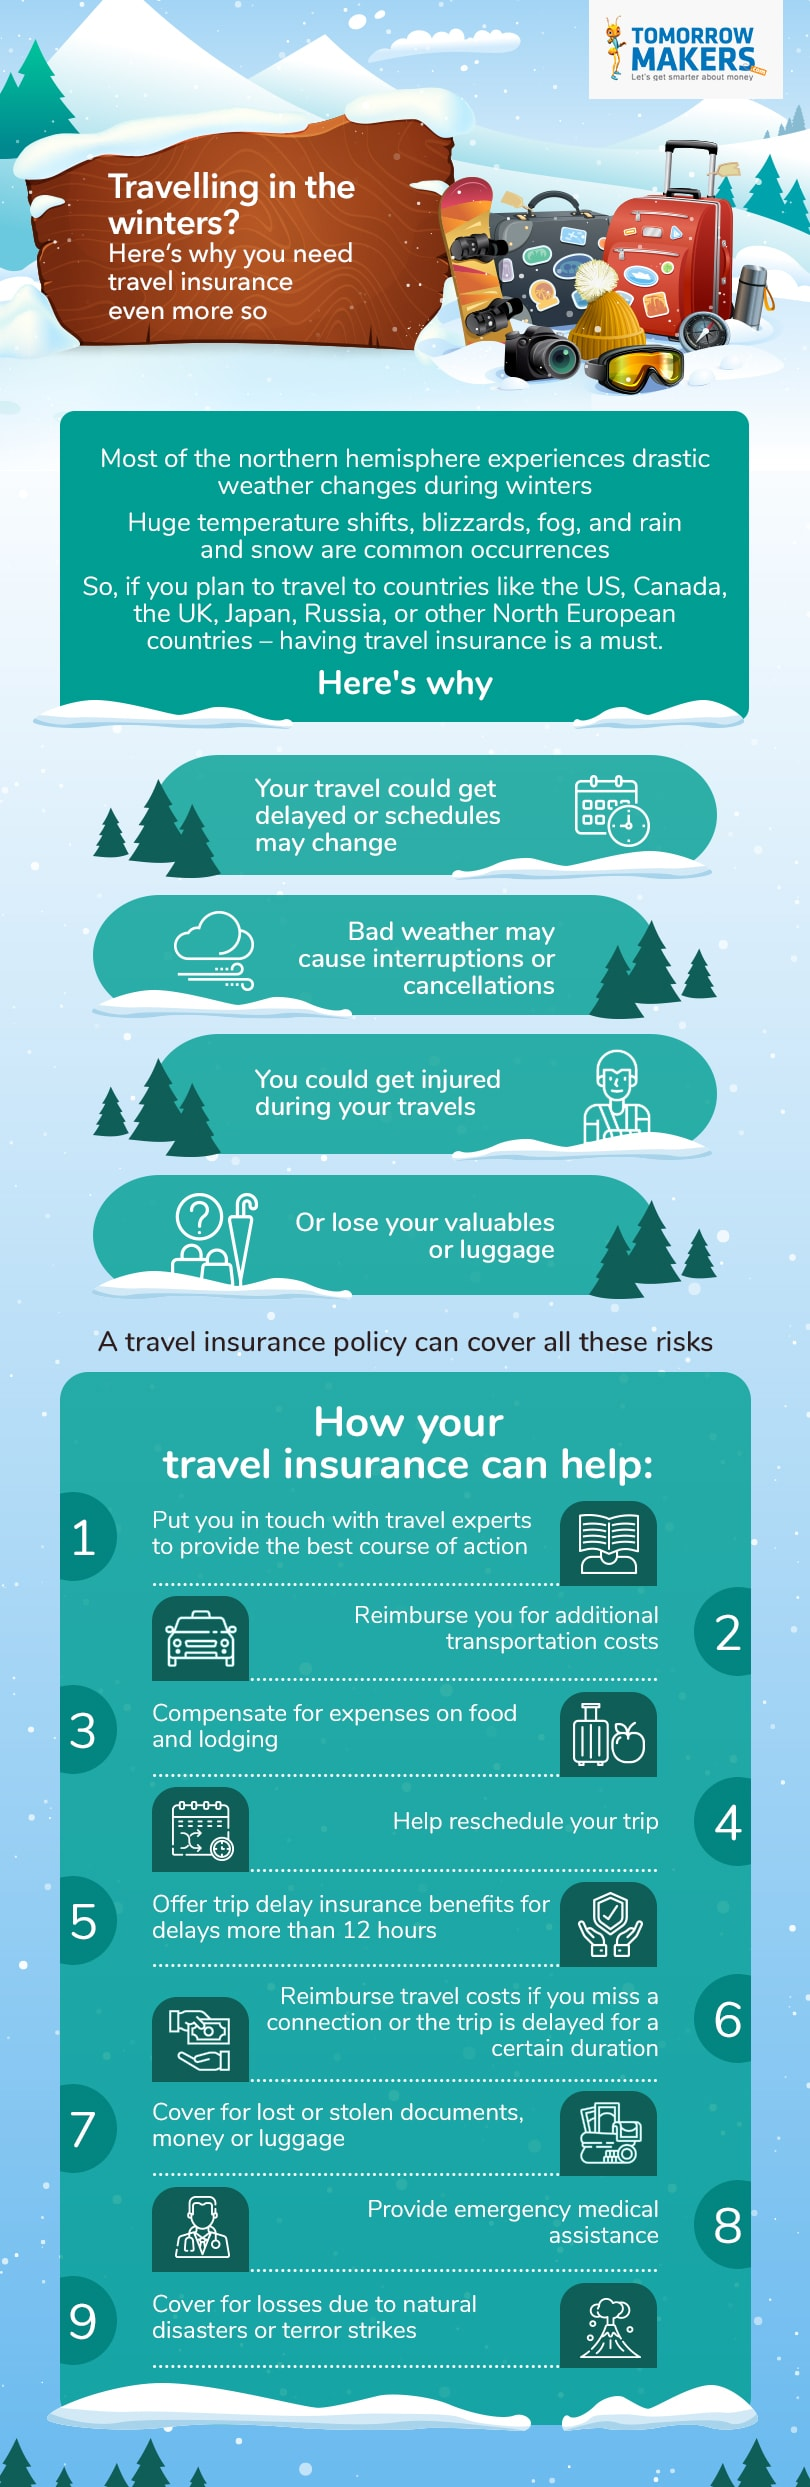 Travelling in the winters? Here's why you need travel insurance even more so